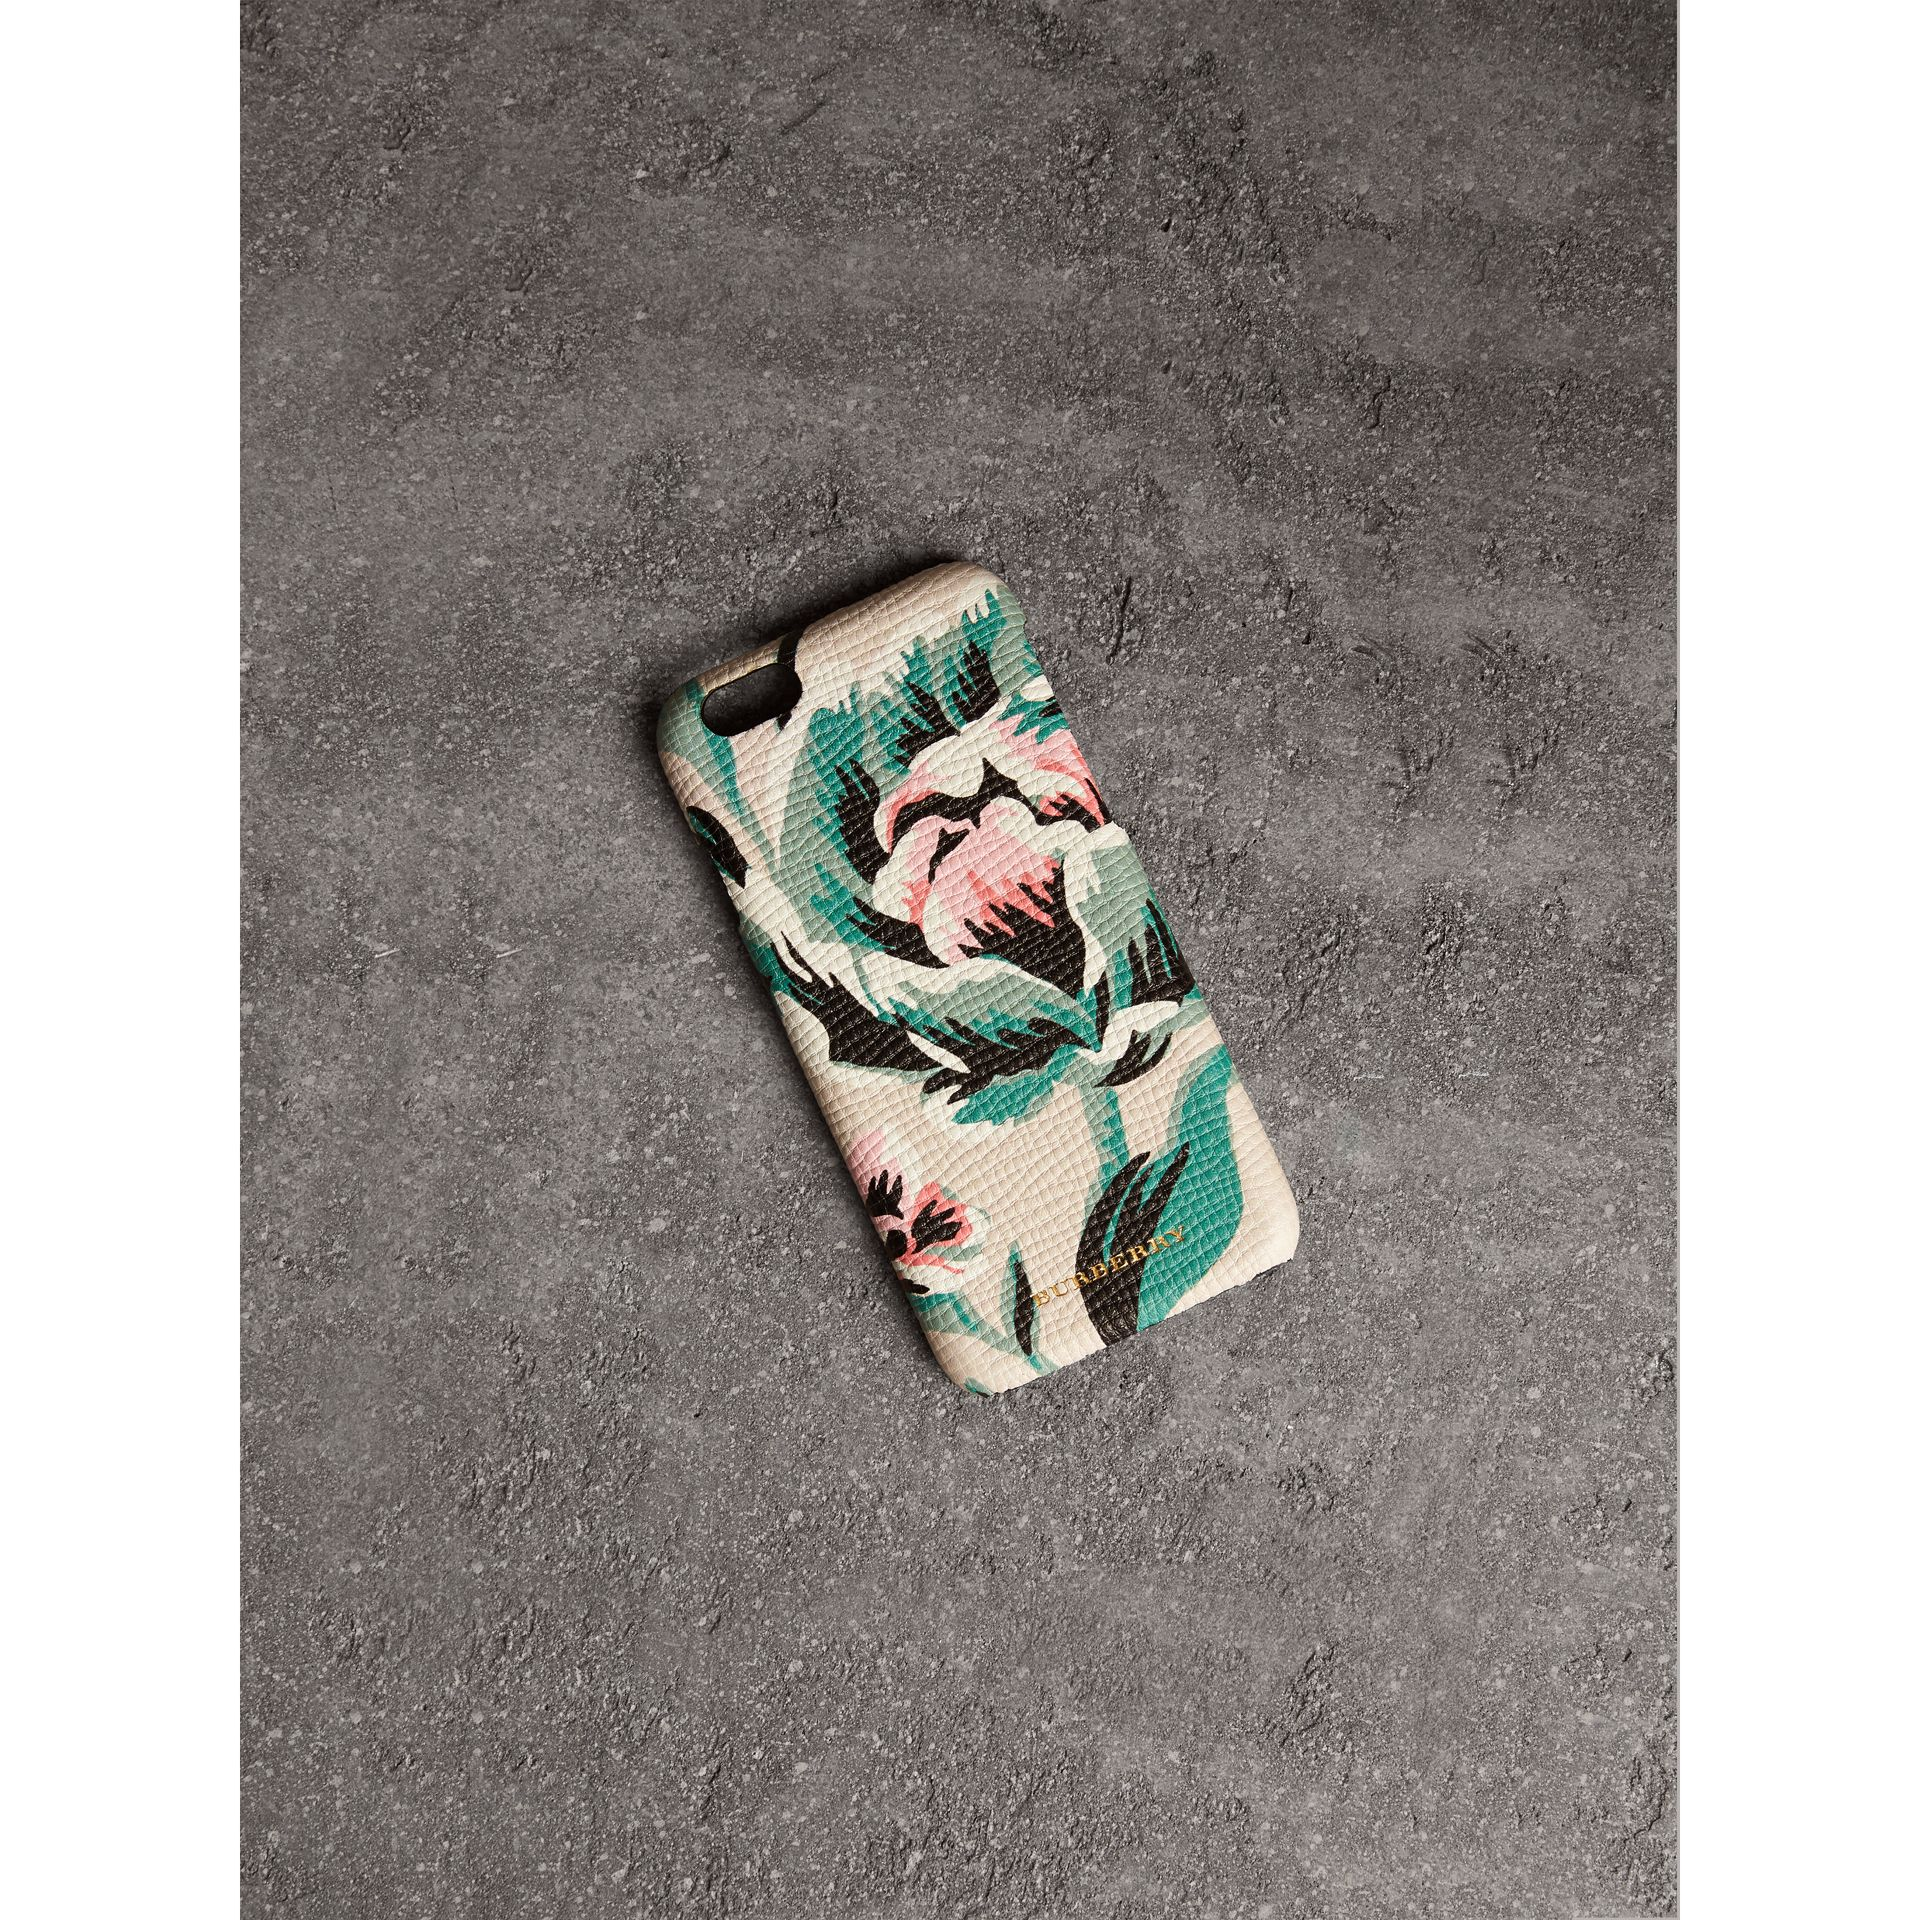 Peony Rose Print Leather iPhone 6 Case in Natural / Emerald Green | Burberry - gallery image 1